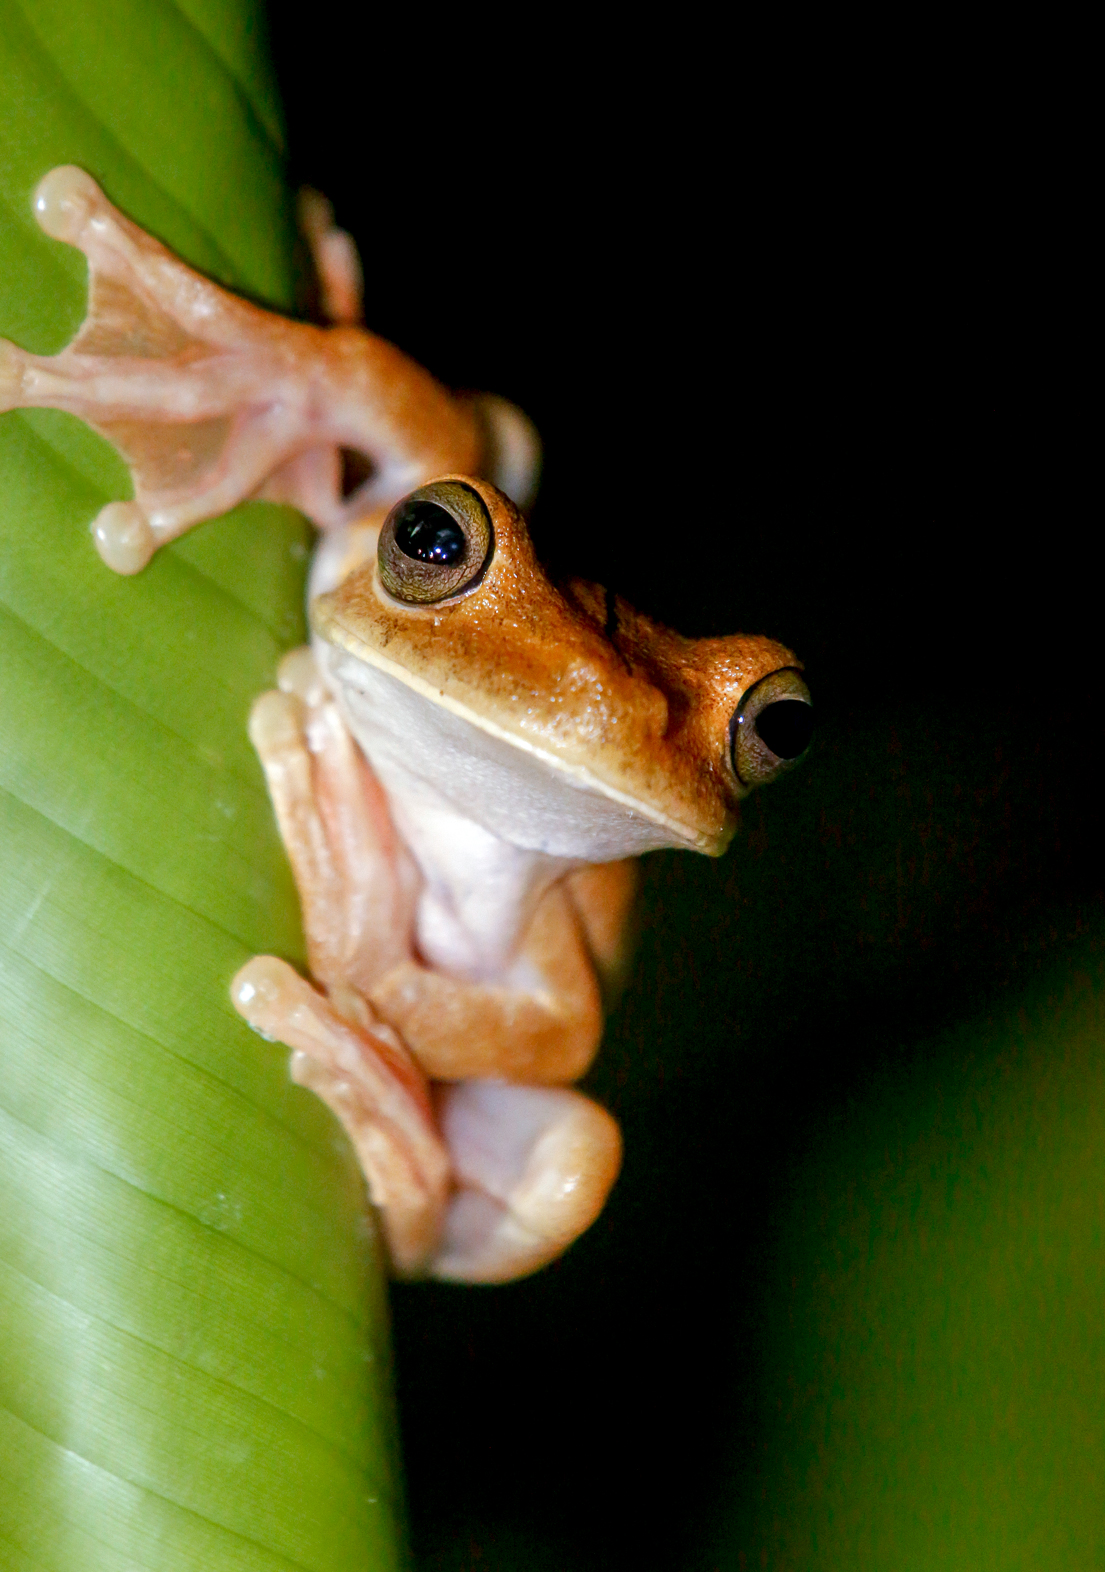 Gladiator Tree Frog on Leaf